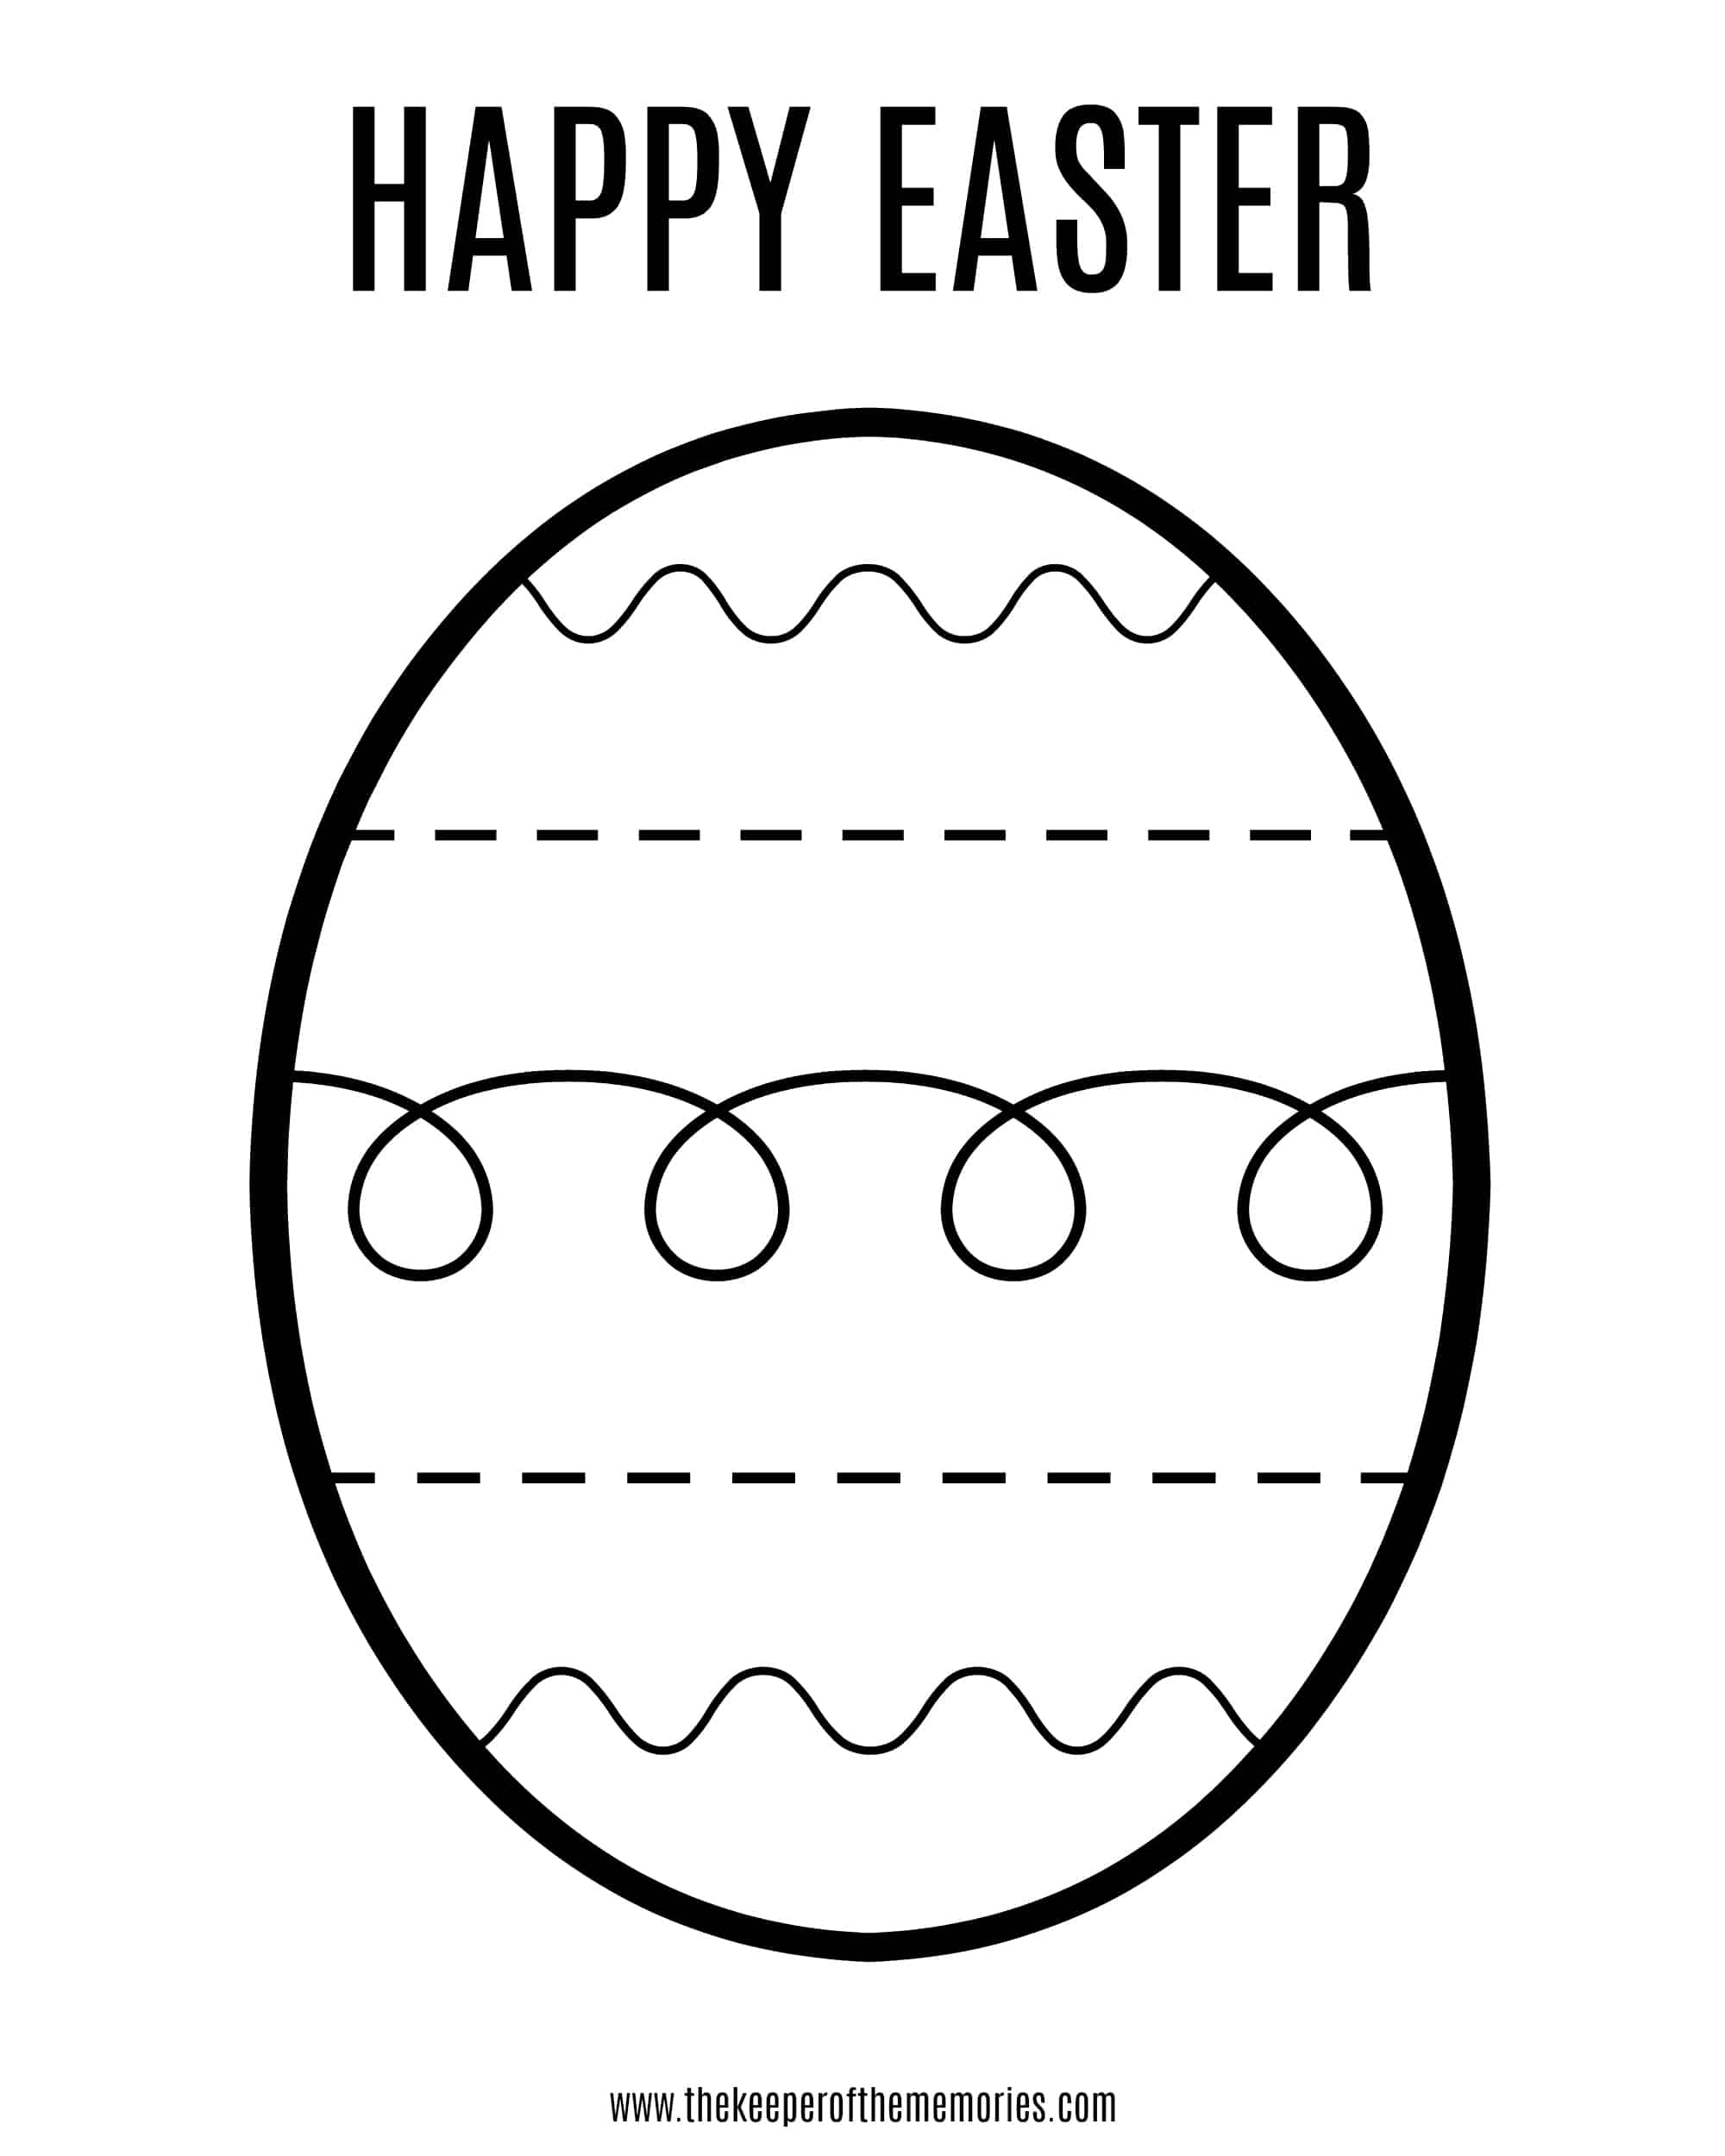 picture about Printable Easter Egg identified as Cost-free Printable Easter Coloring Sheet for Minimal Little ones - The